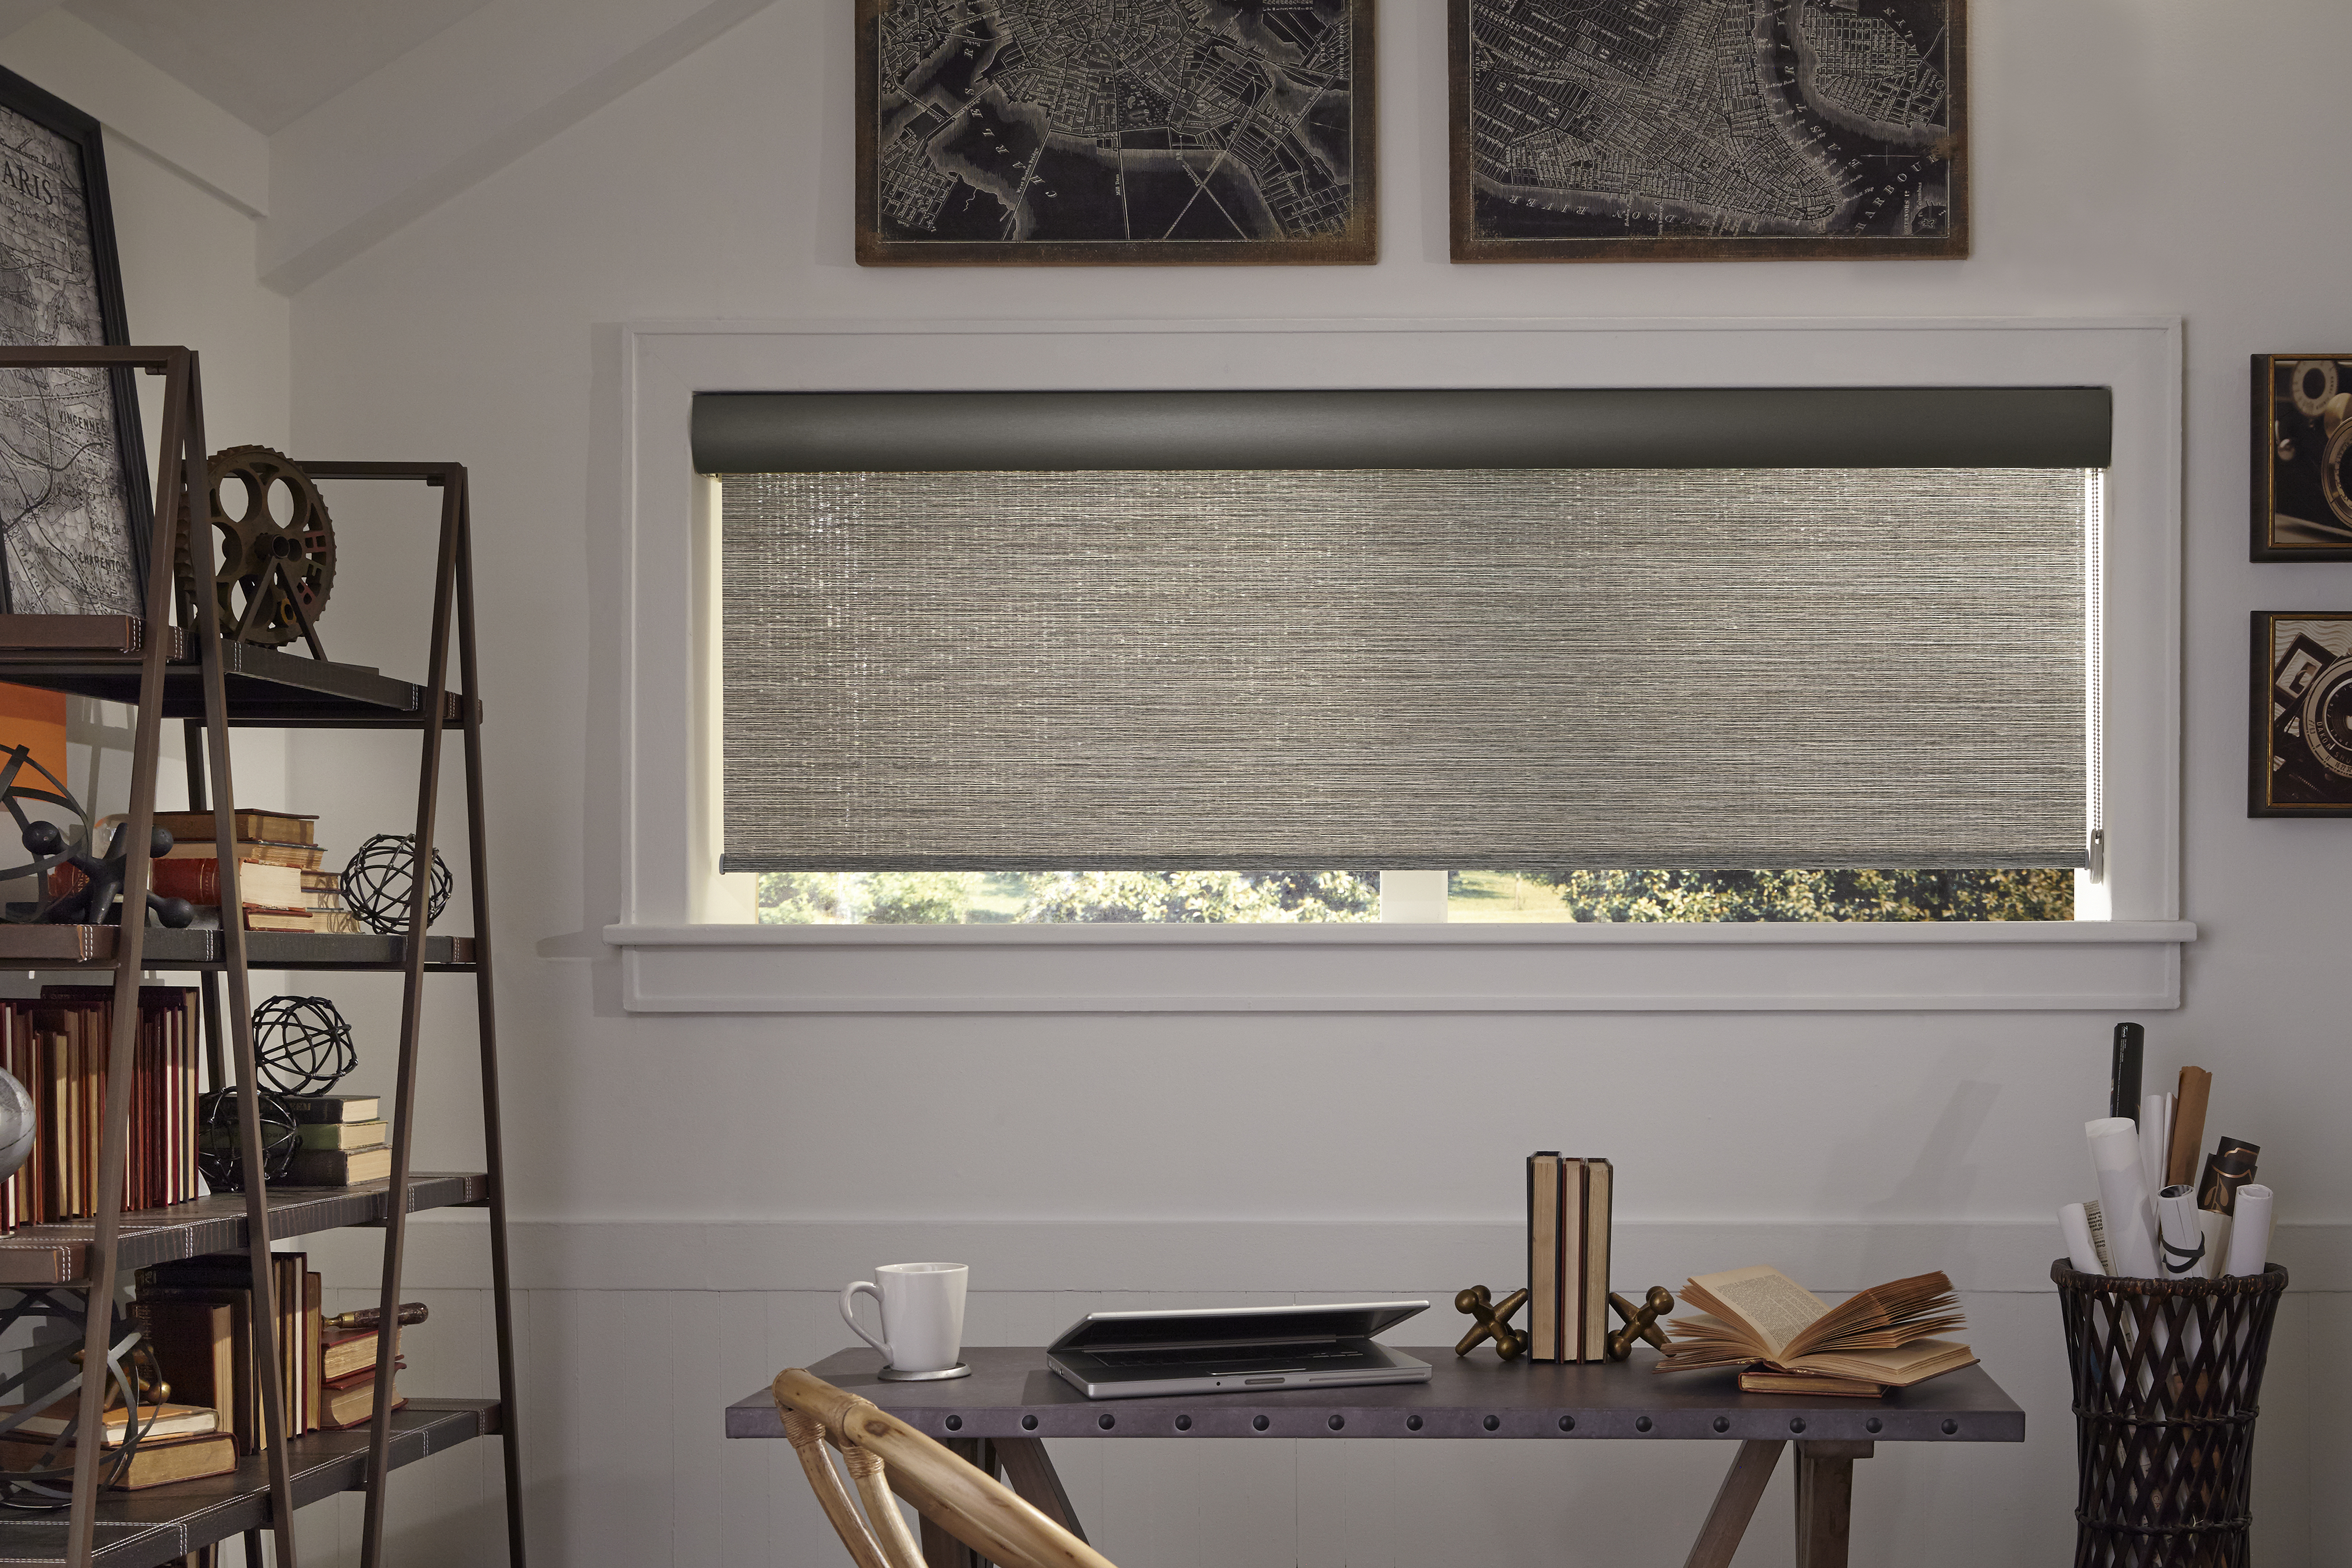 Genesis Season-Vue Roller Shades with Exterior Cable Guide System (3)